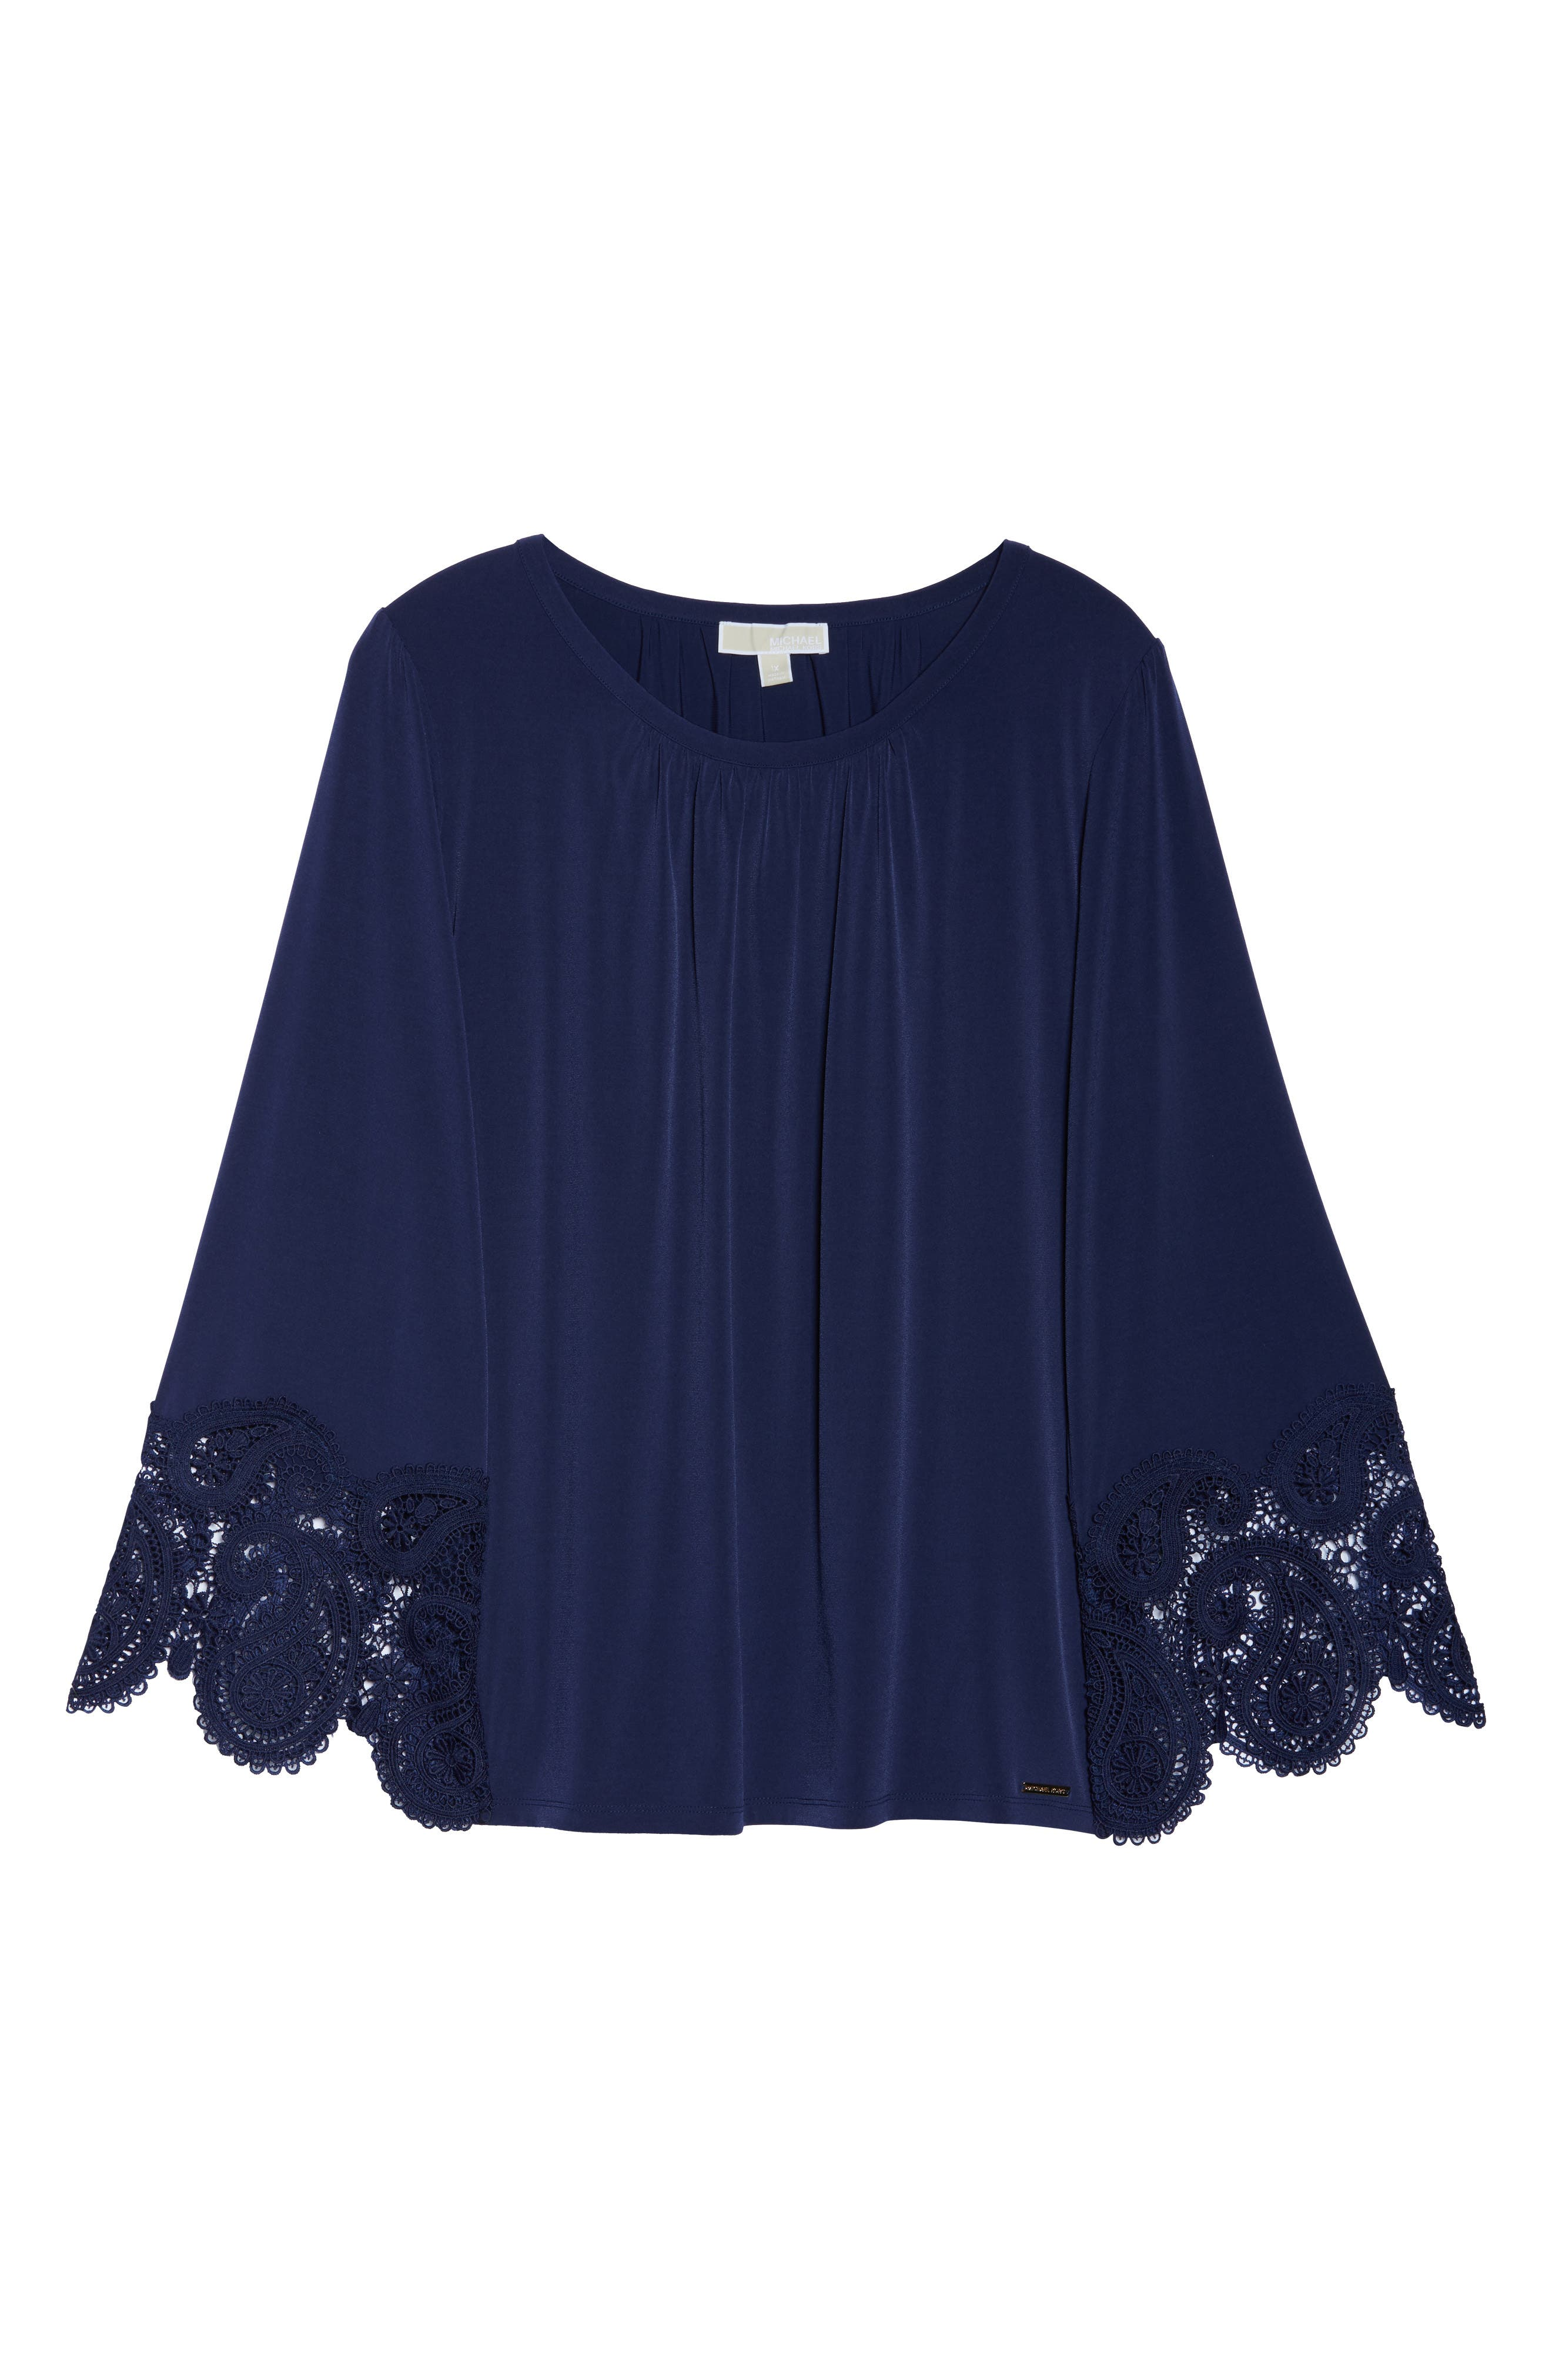 Lace Cuff Top,                             Alternate thumbnail 7, color,                             True Navy